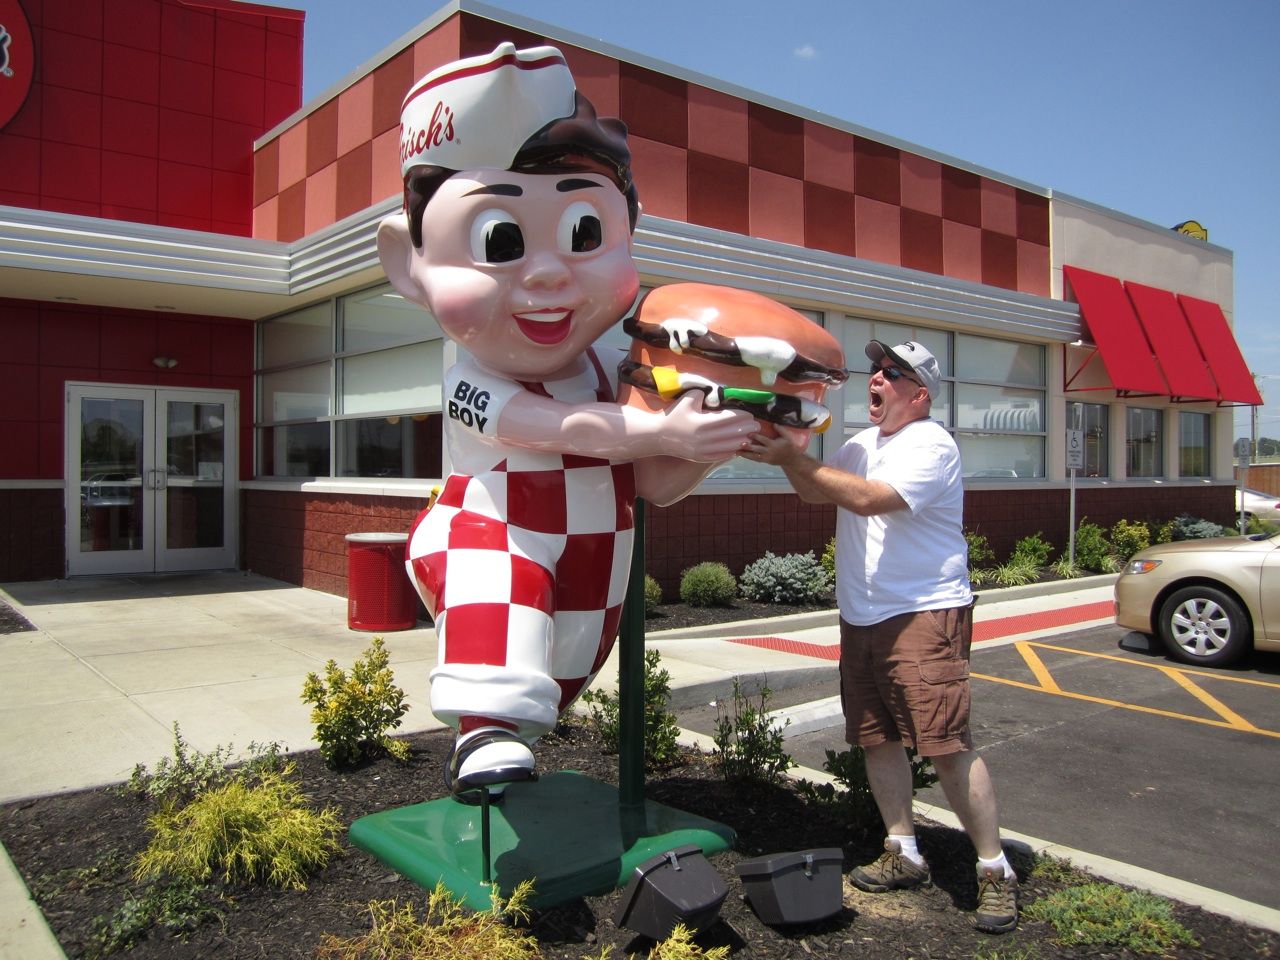 David Trying To Steal Big Boy's Burger